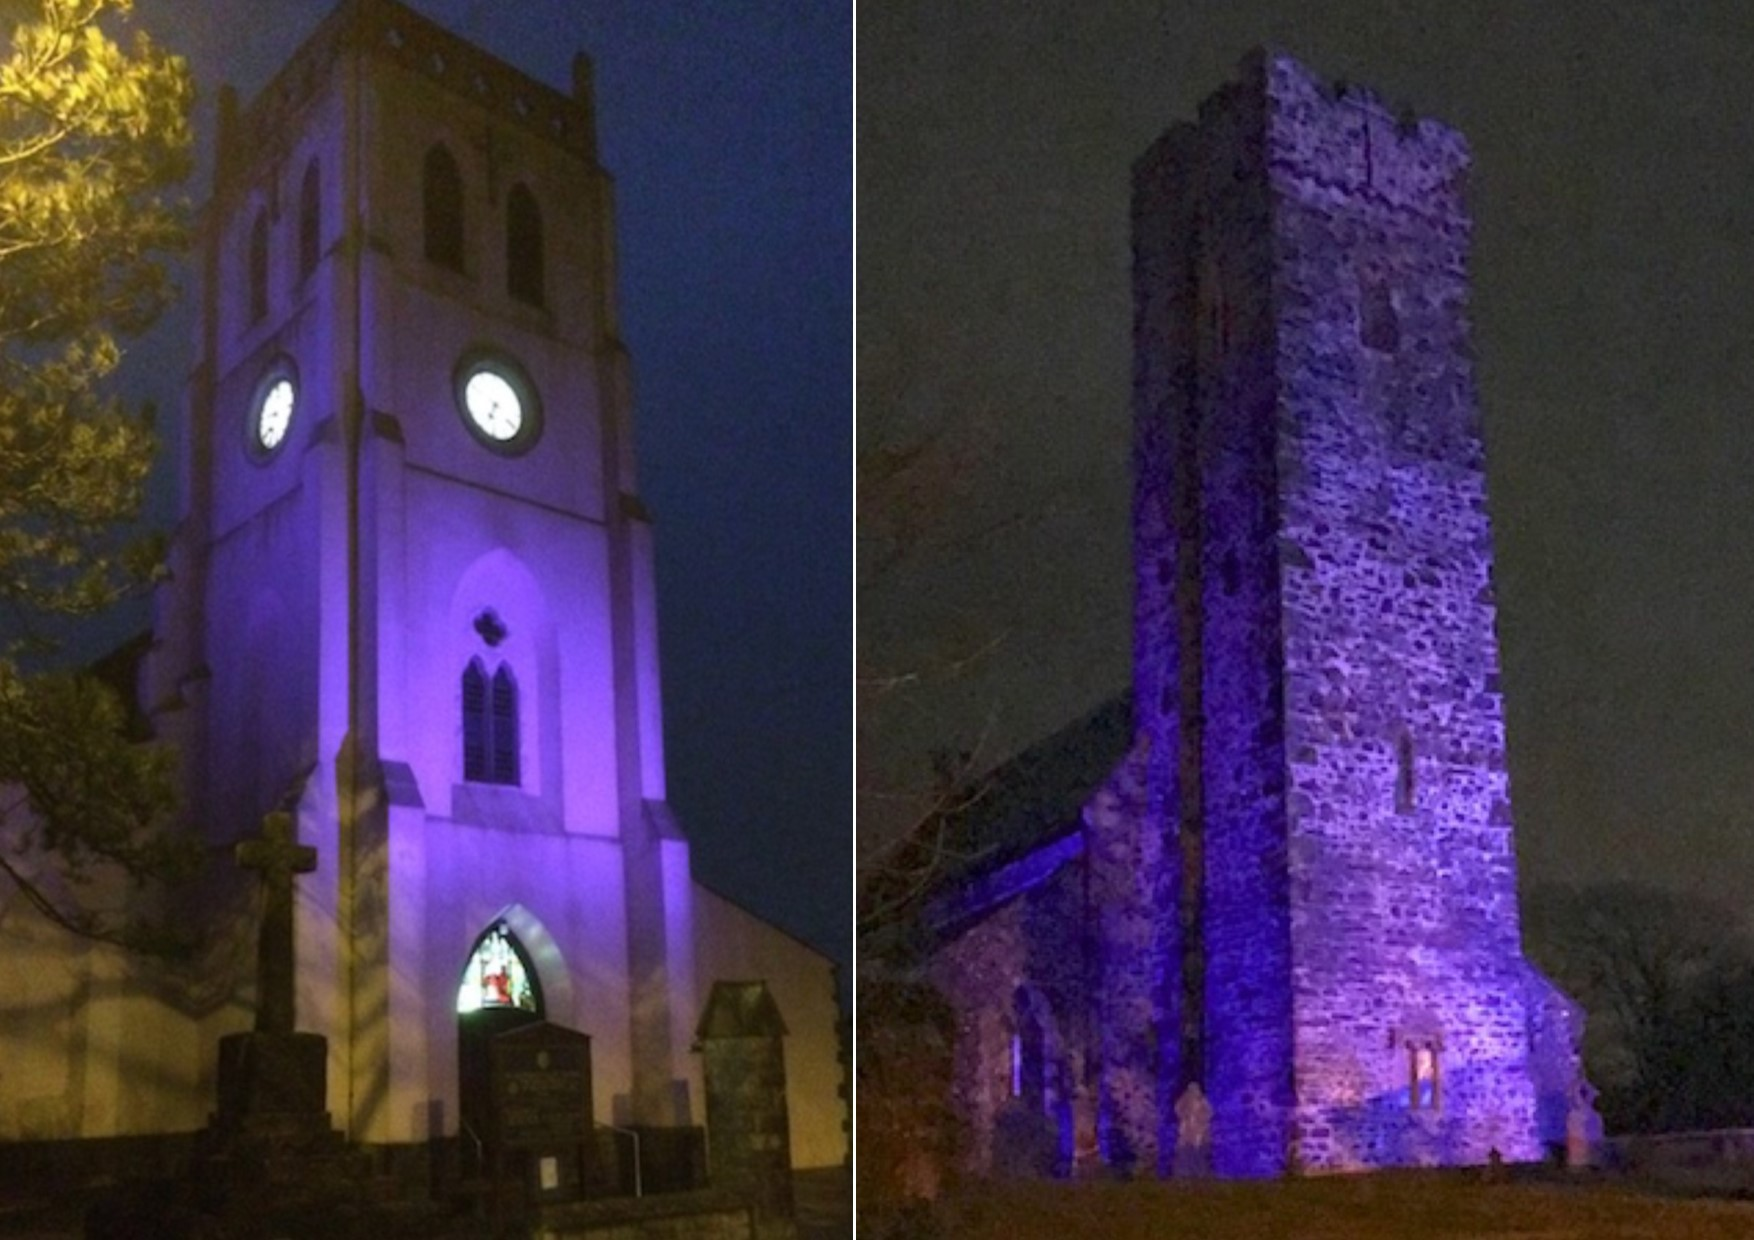 Lit up in purple: St Katharine and St Peter's Church, St. Cewydd and St. Peter Church in Steynton.